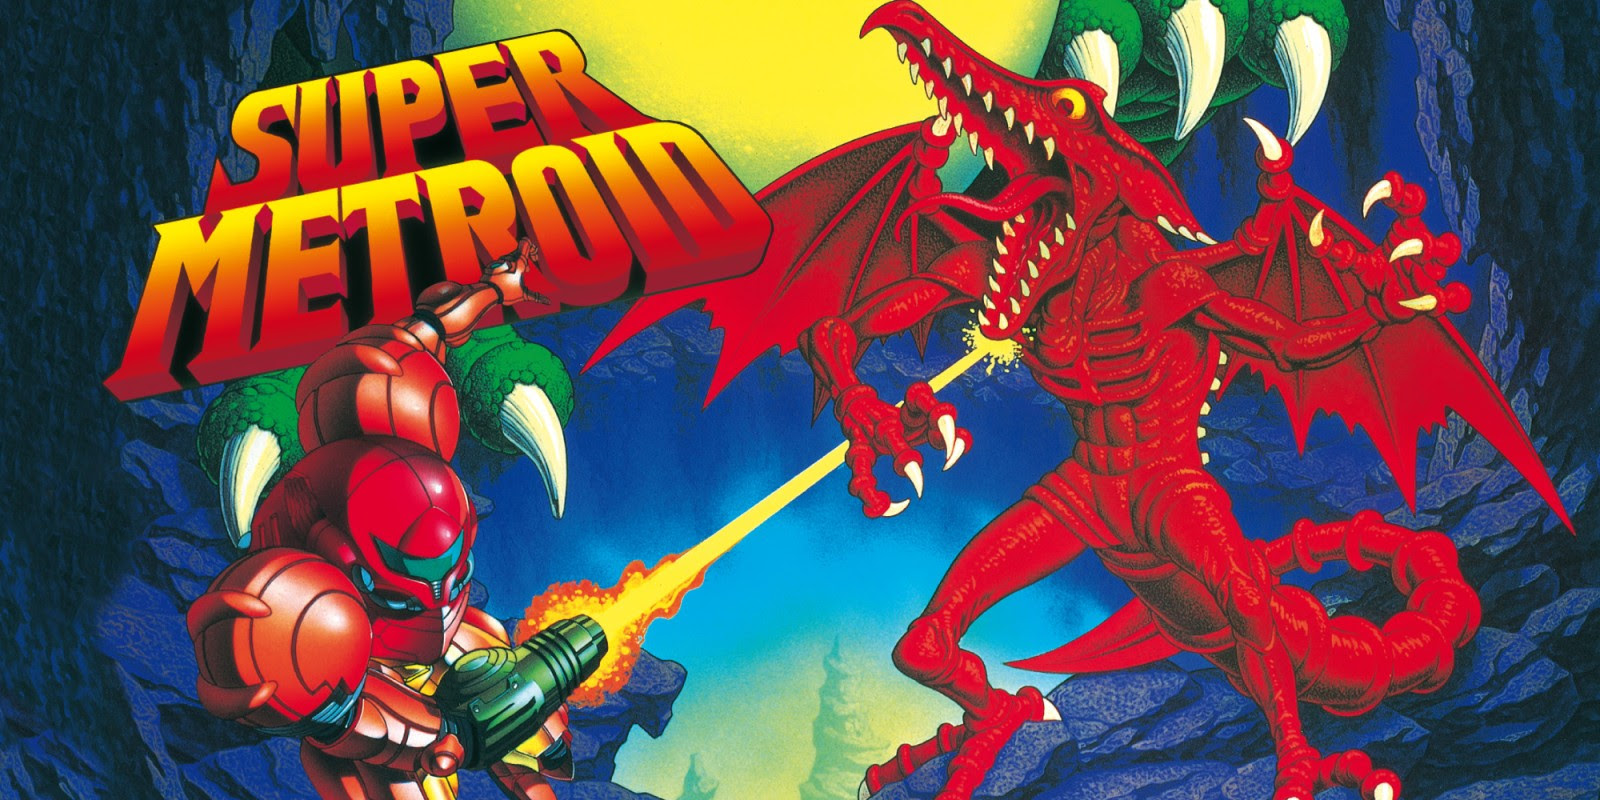 Metroid Series Producer Says No Plans To Remake Super Metroid Or Metroid Fusion